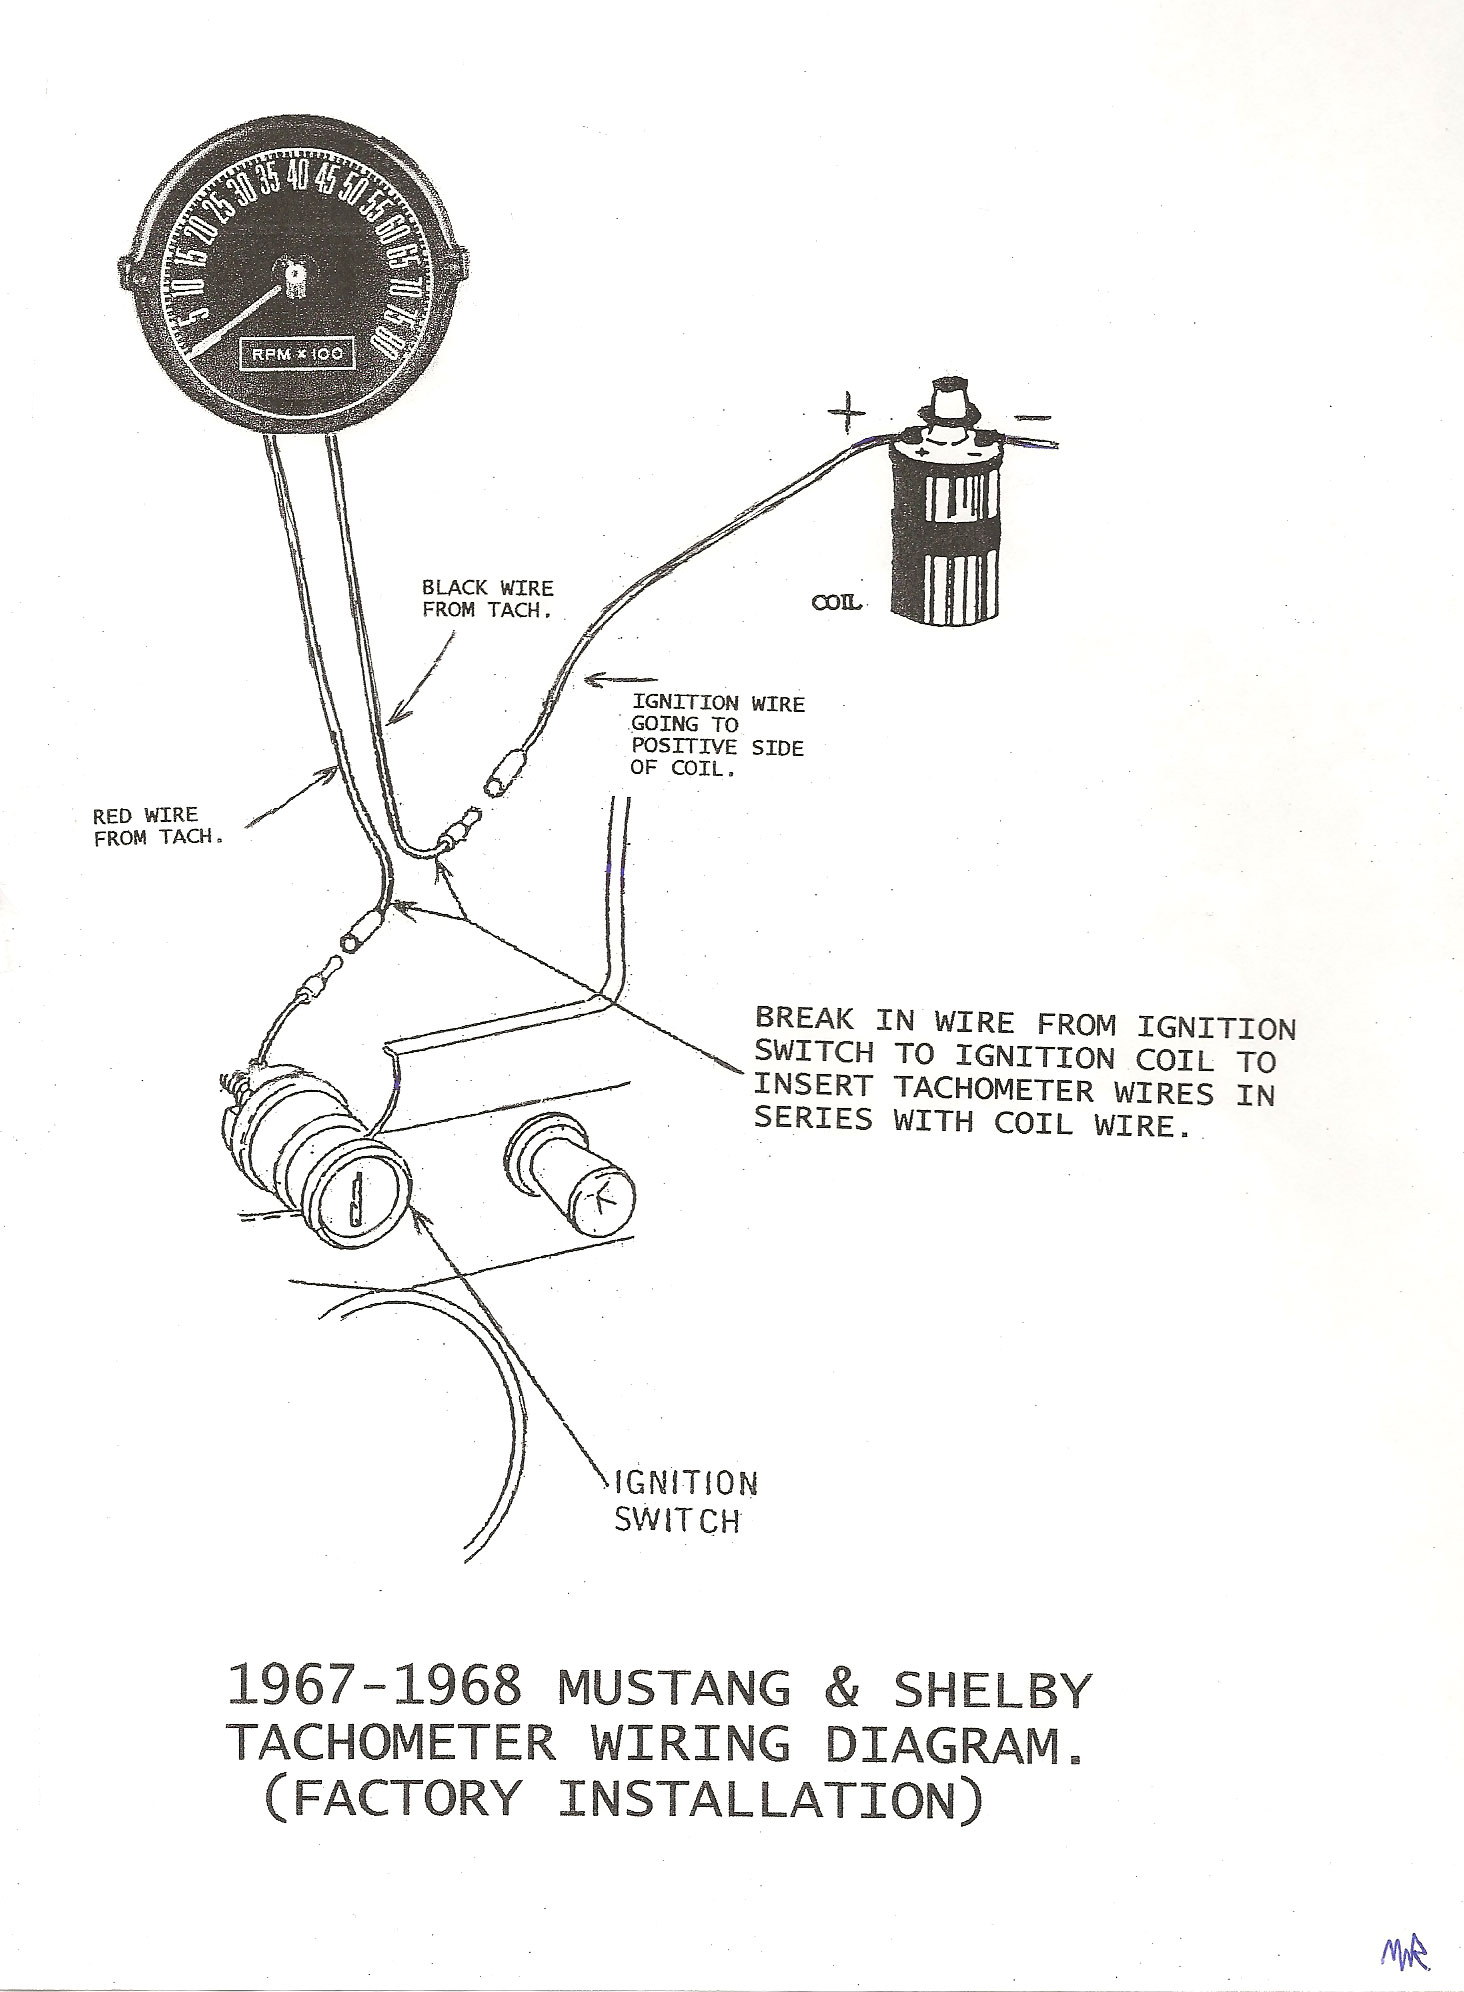 1980 Mustang Tach Wiring Diagram - wiring diagram ground-data -  ground-data.labottegadisilvia.it | 1980 Mustang Tach Wiring Diagram |  | ground-data.labottegadisilvia.it